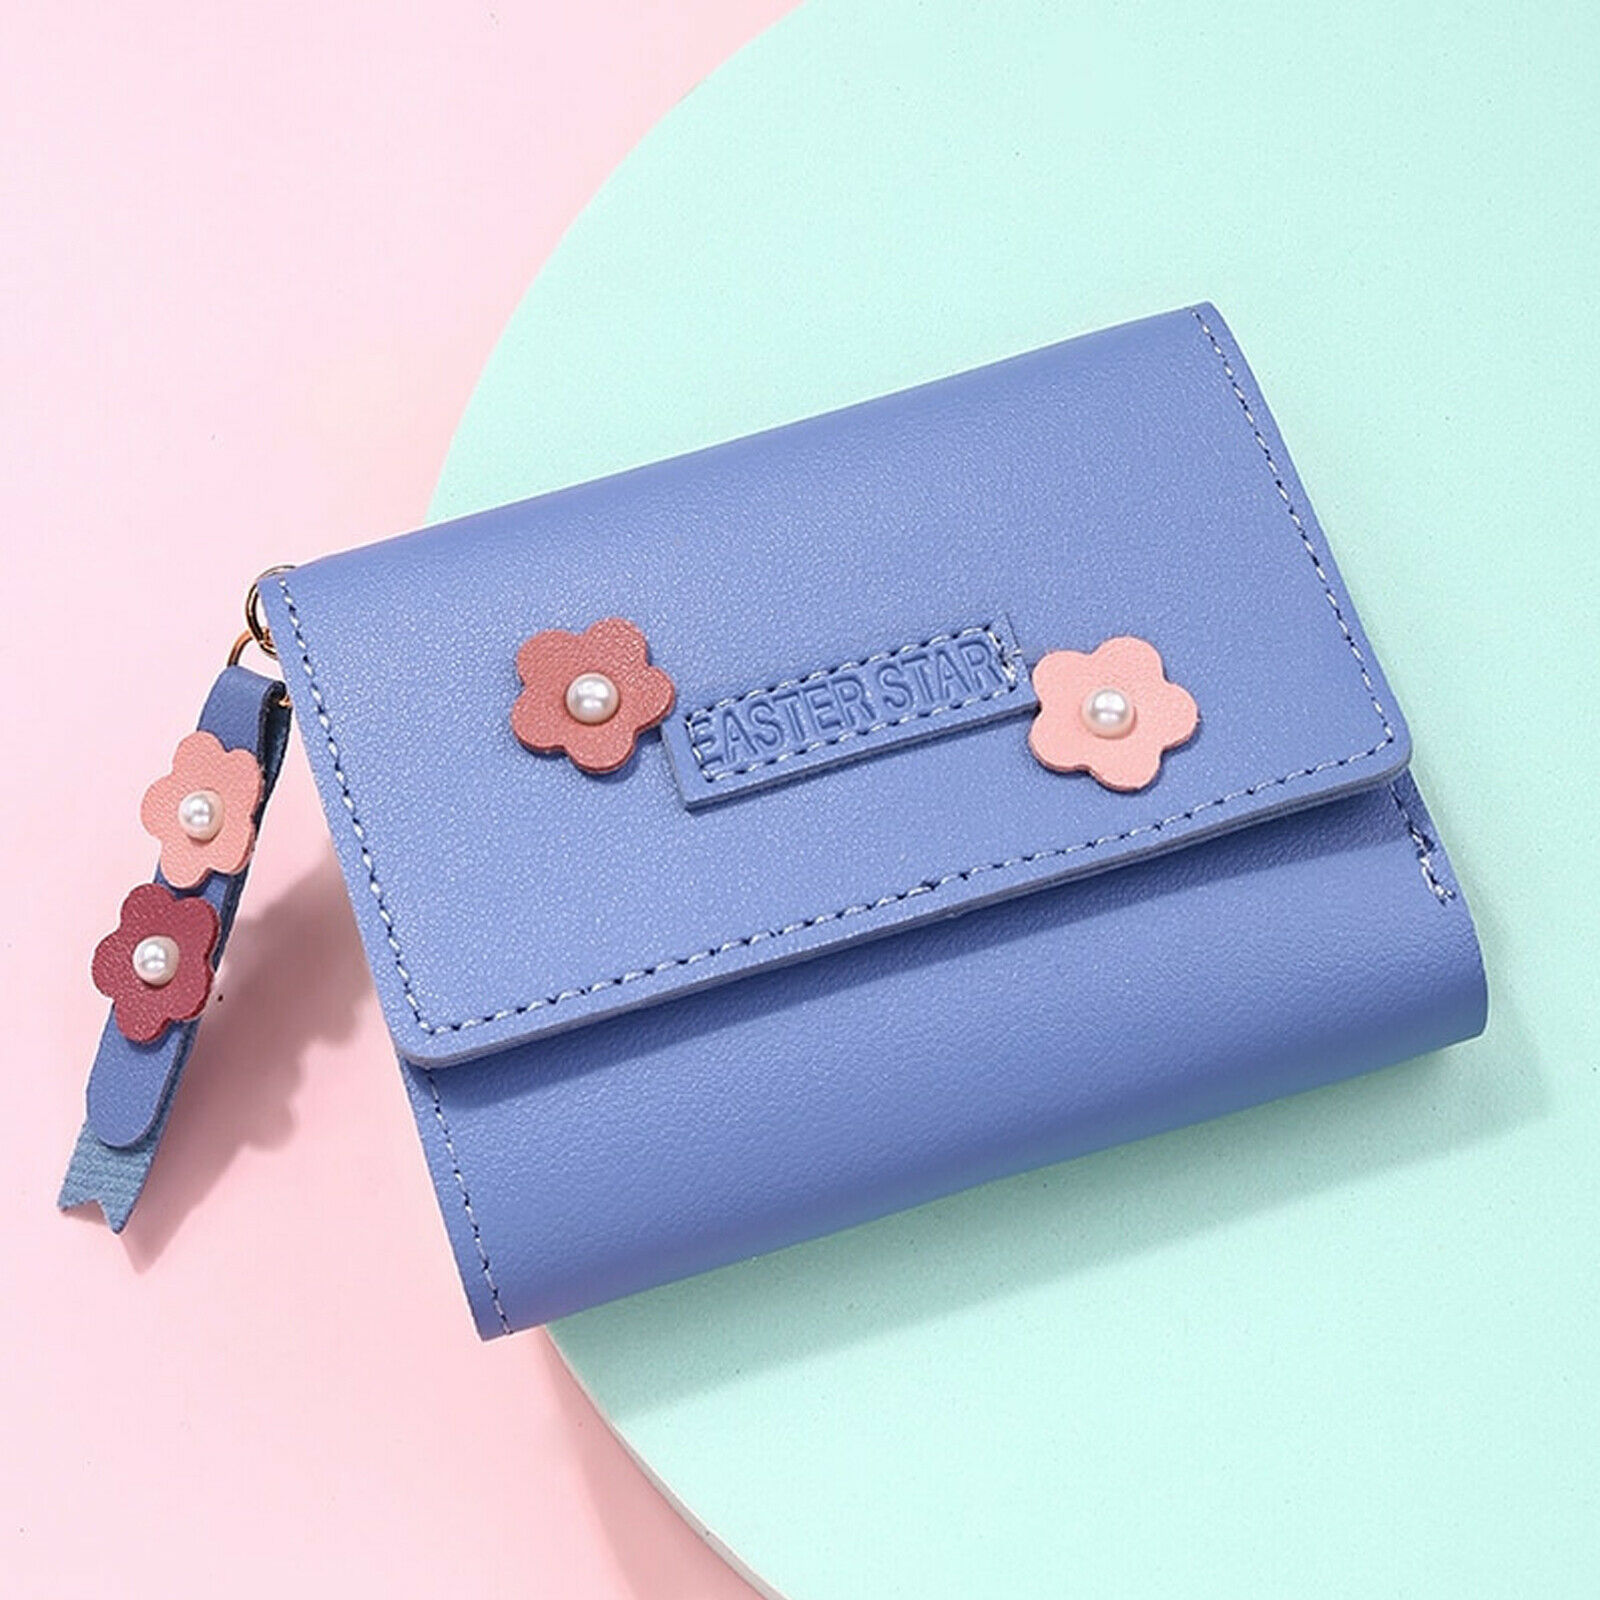 2021 New Fashion Women Wallets Leather Hasp Coin Mini Purse Credit Card Holder